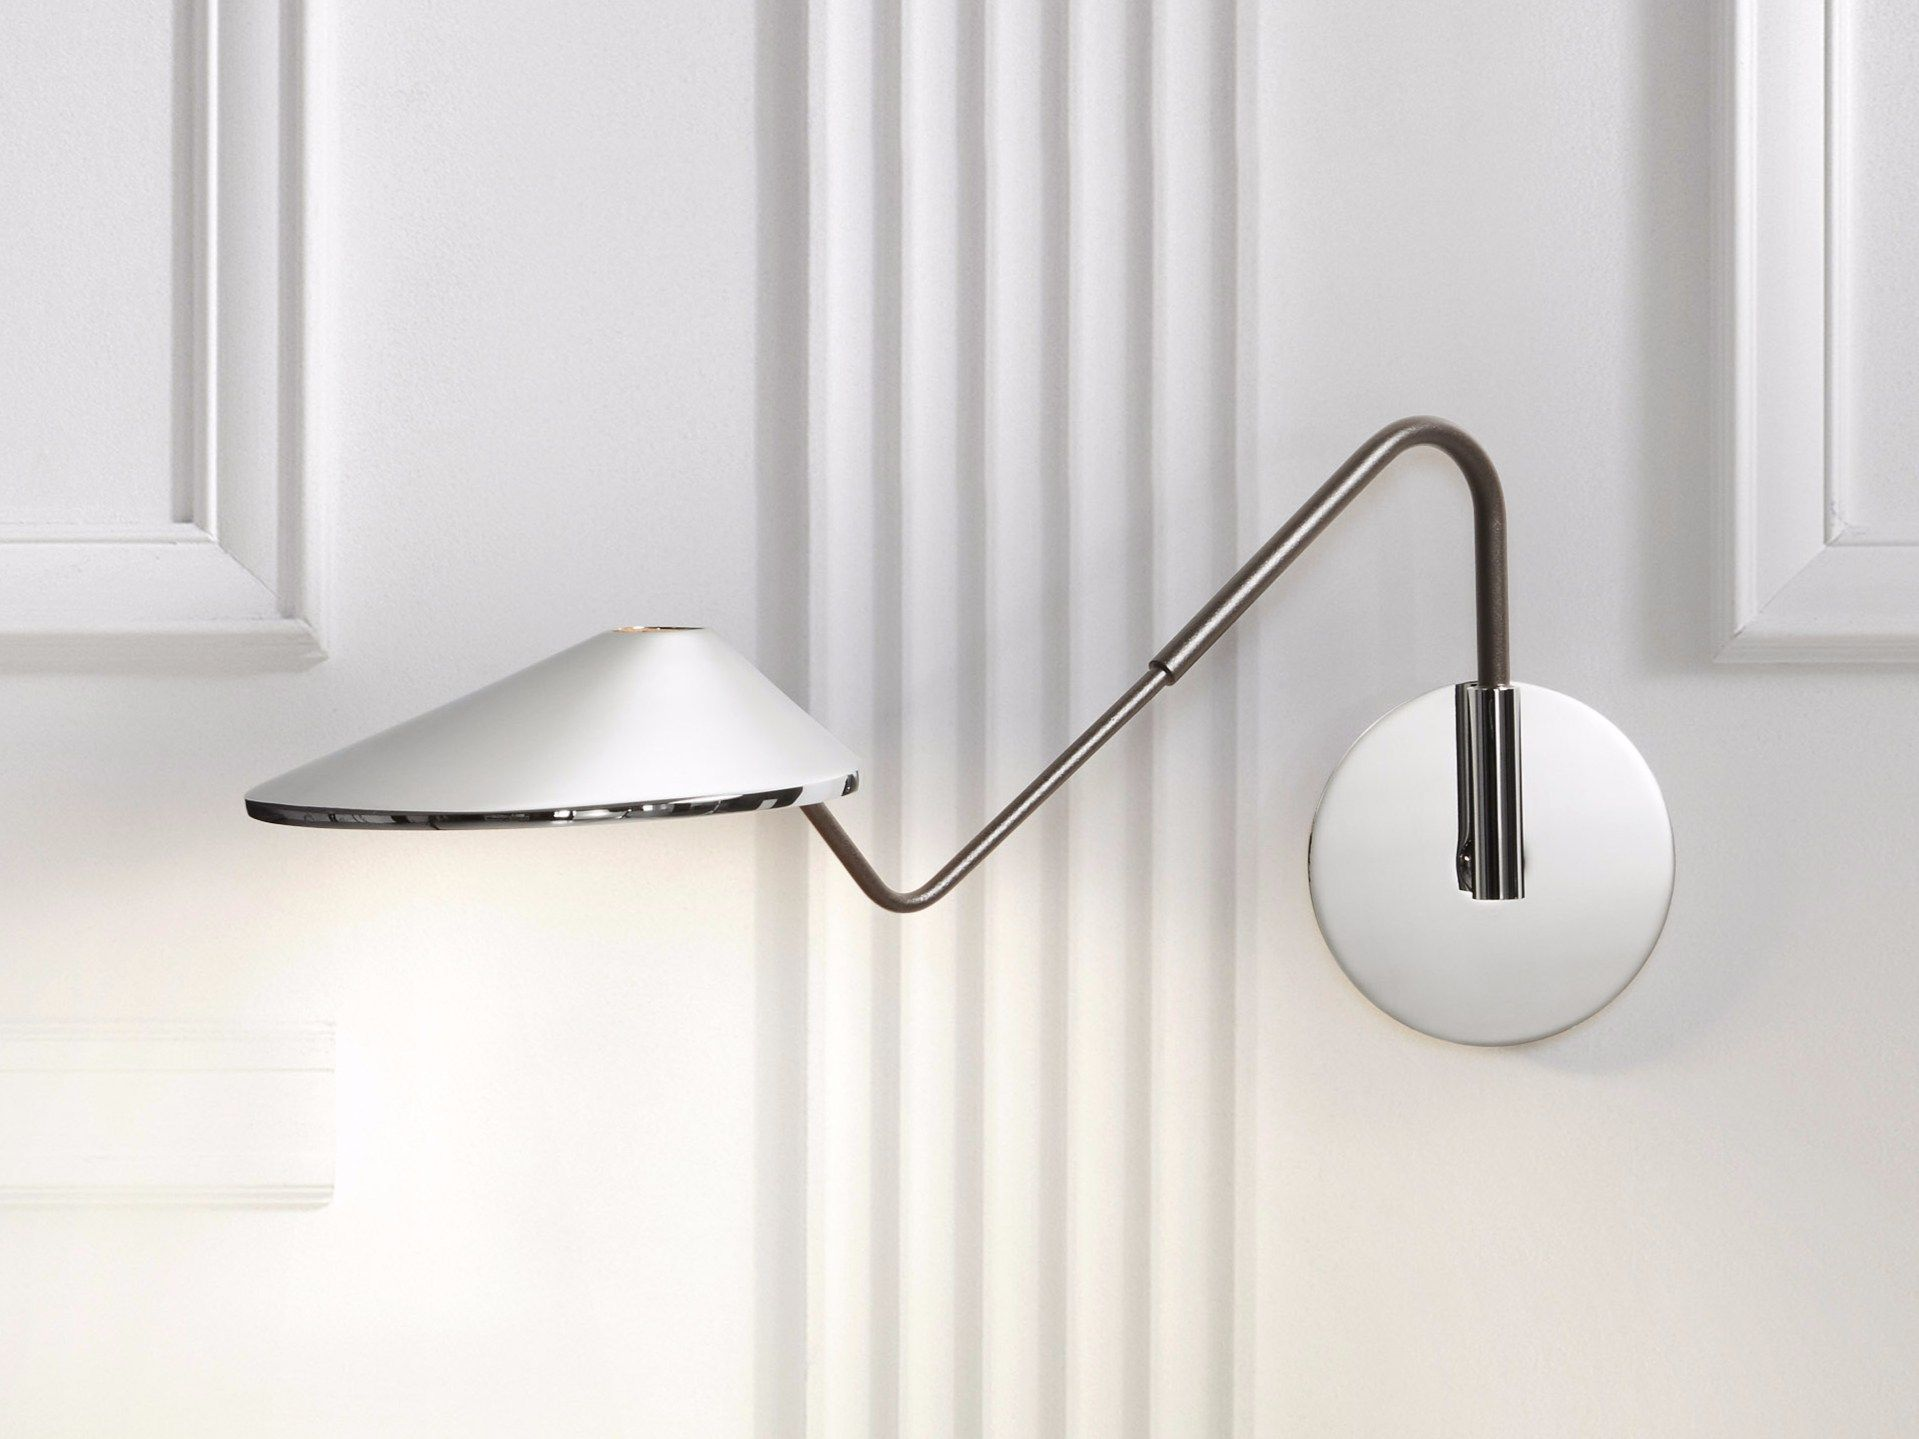 NÓN LÁ A 03 By BOVER design Jorge Pensi | Metal wall light ... on Decorative Wall Sconces Non Lighting id=27939